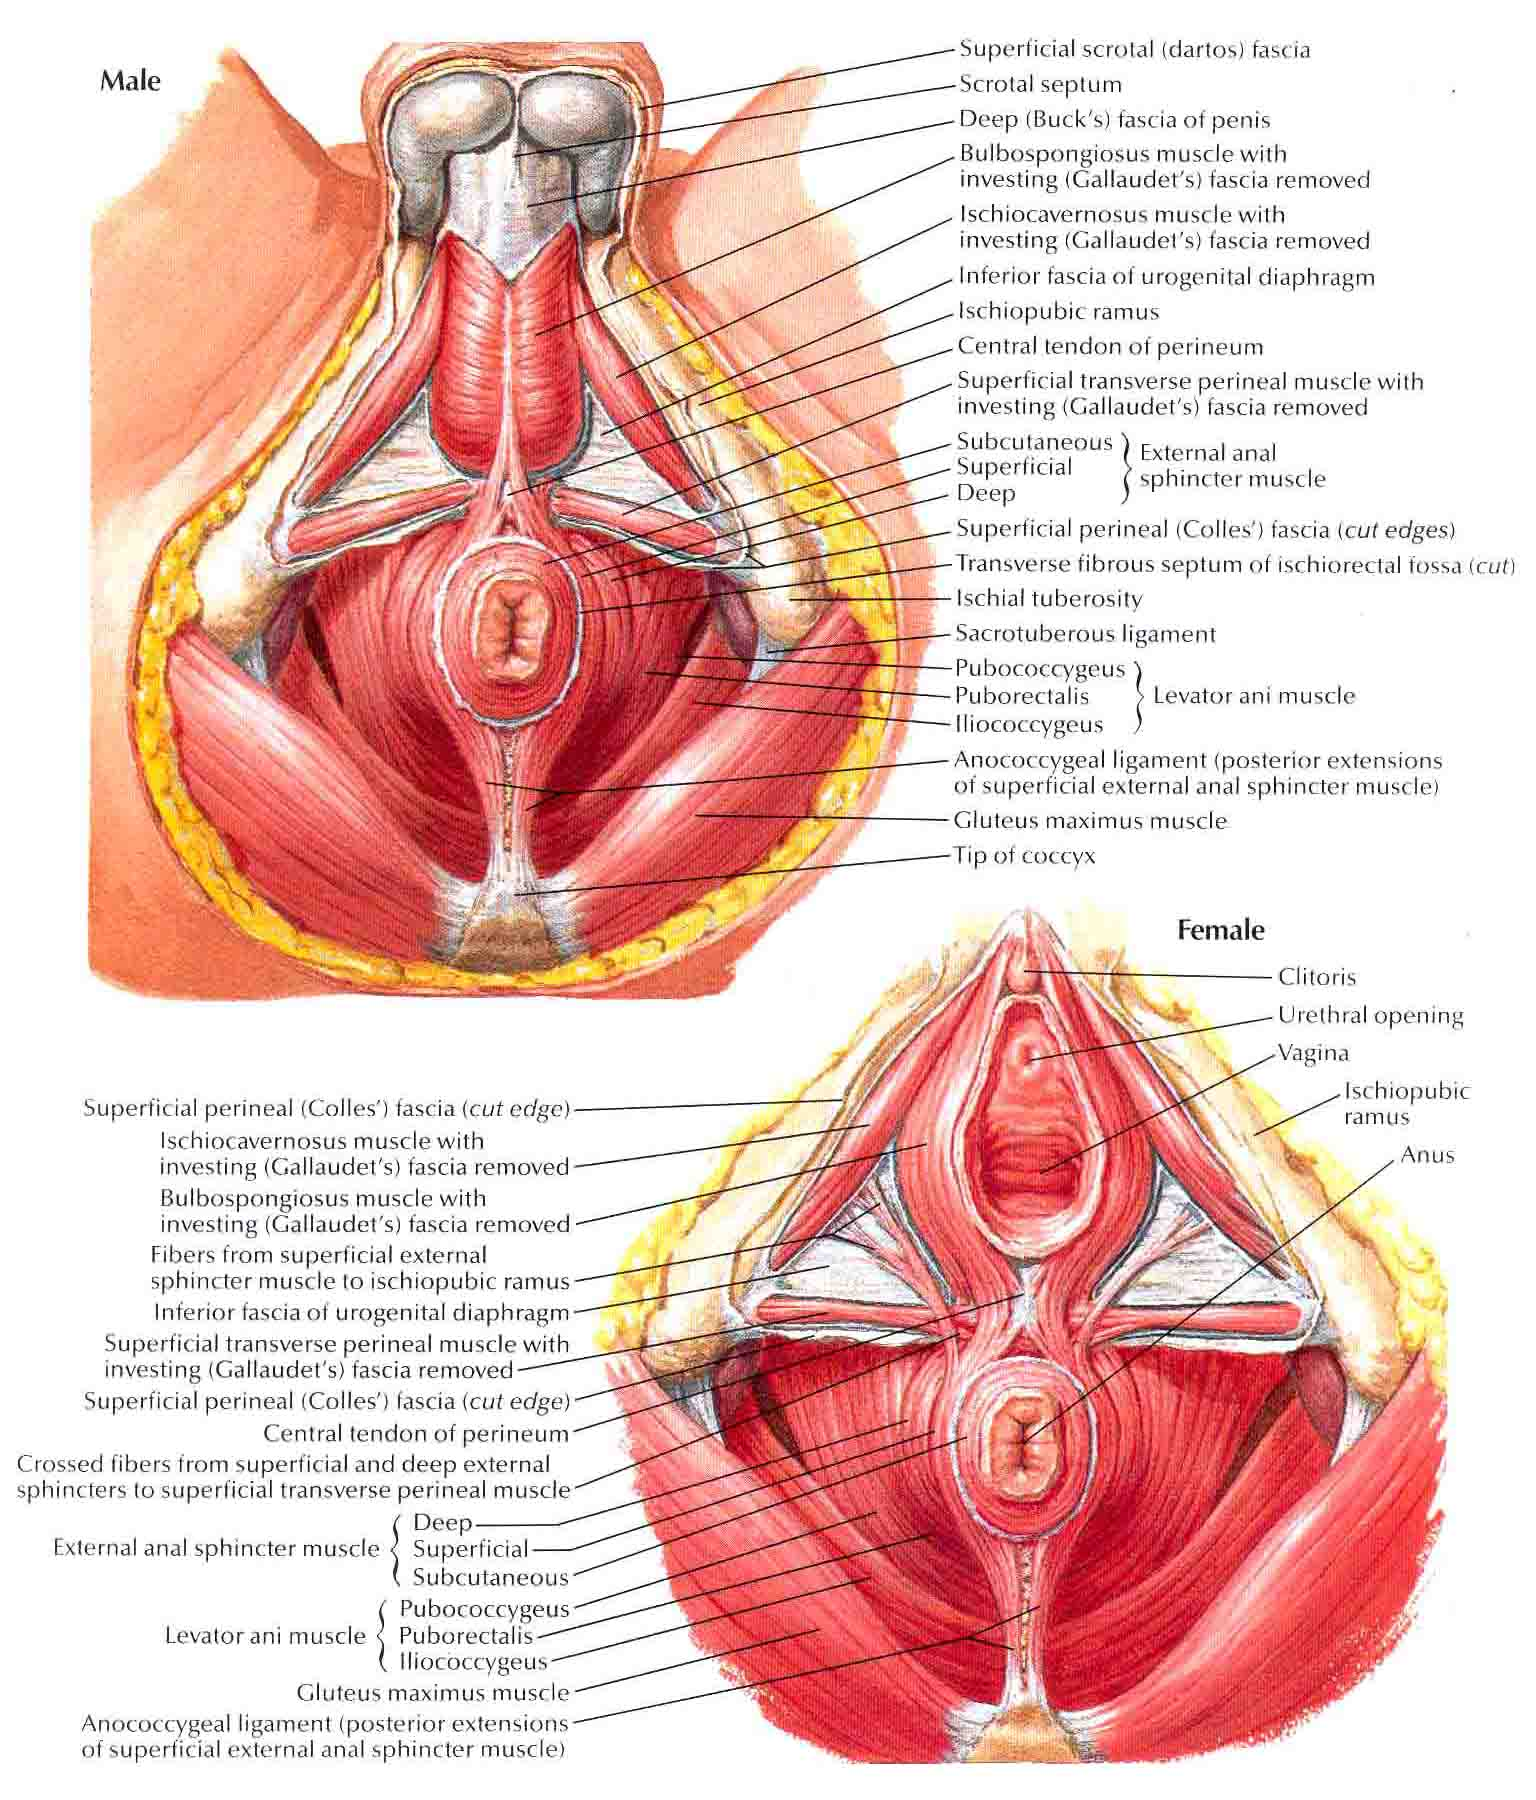 Sphincter muscle of anus